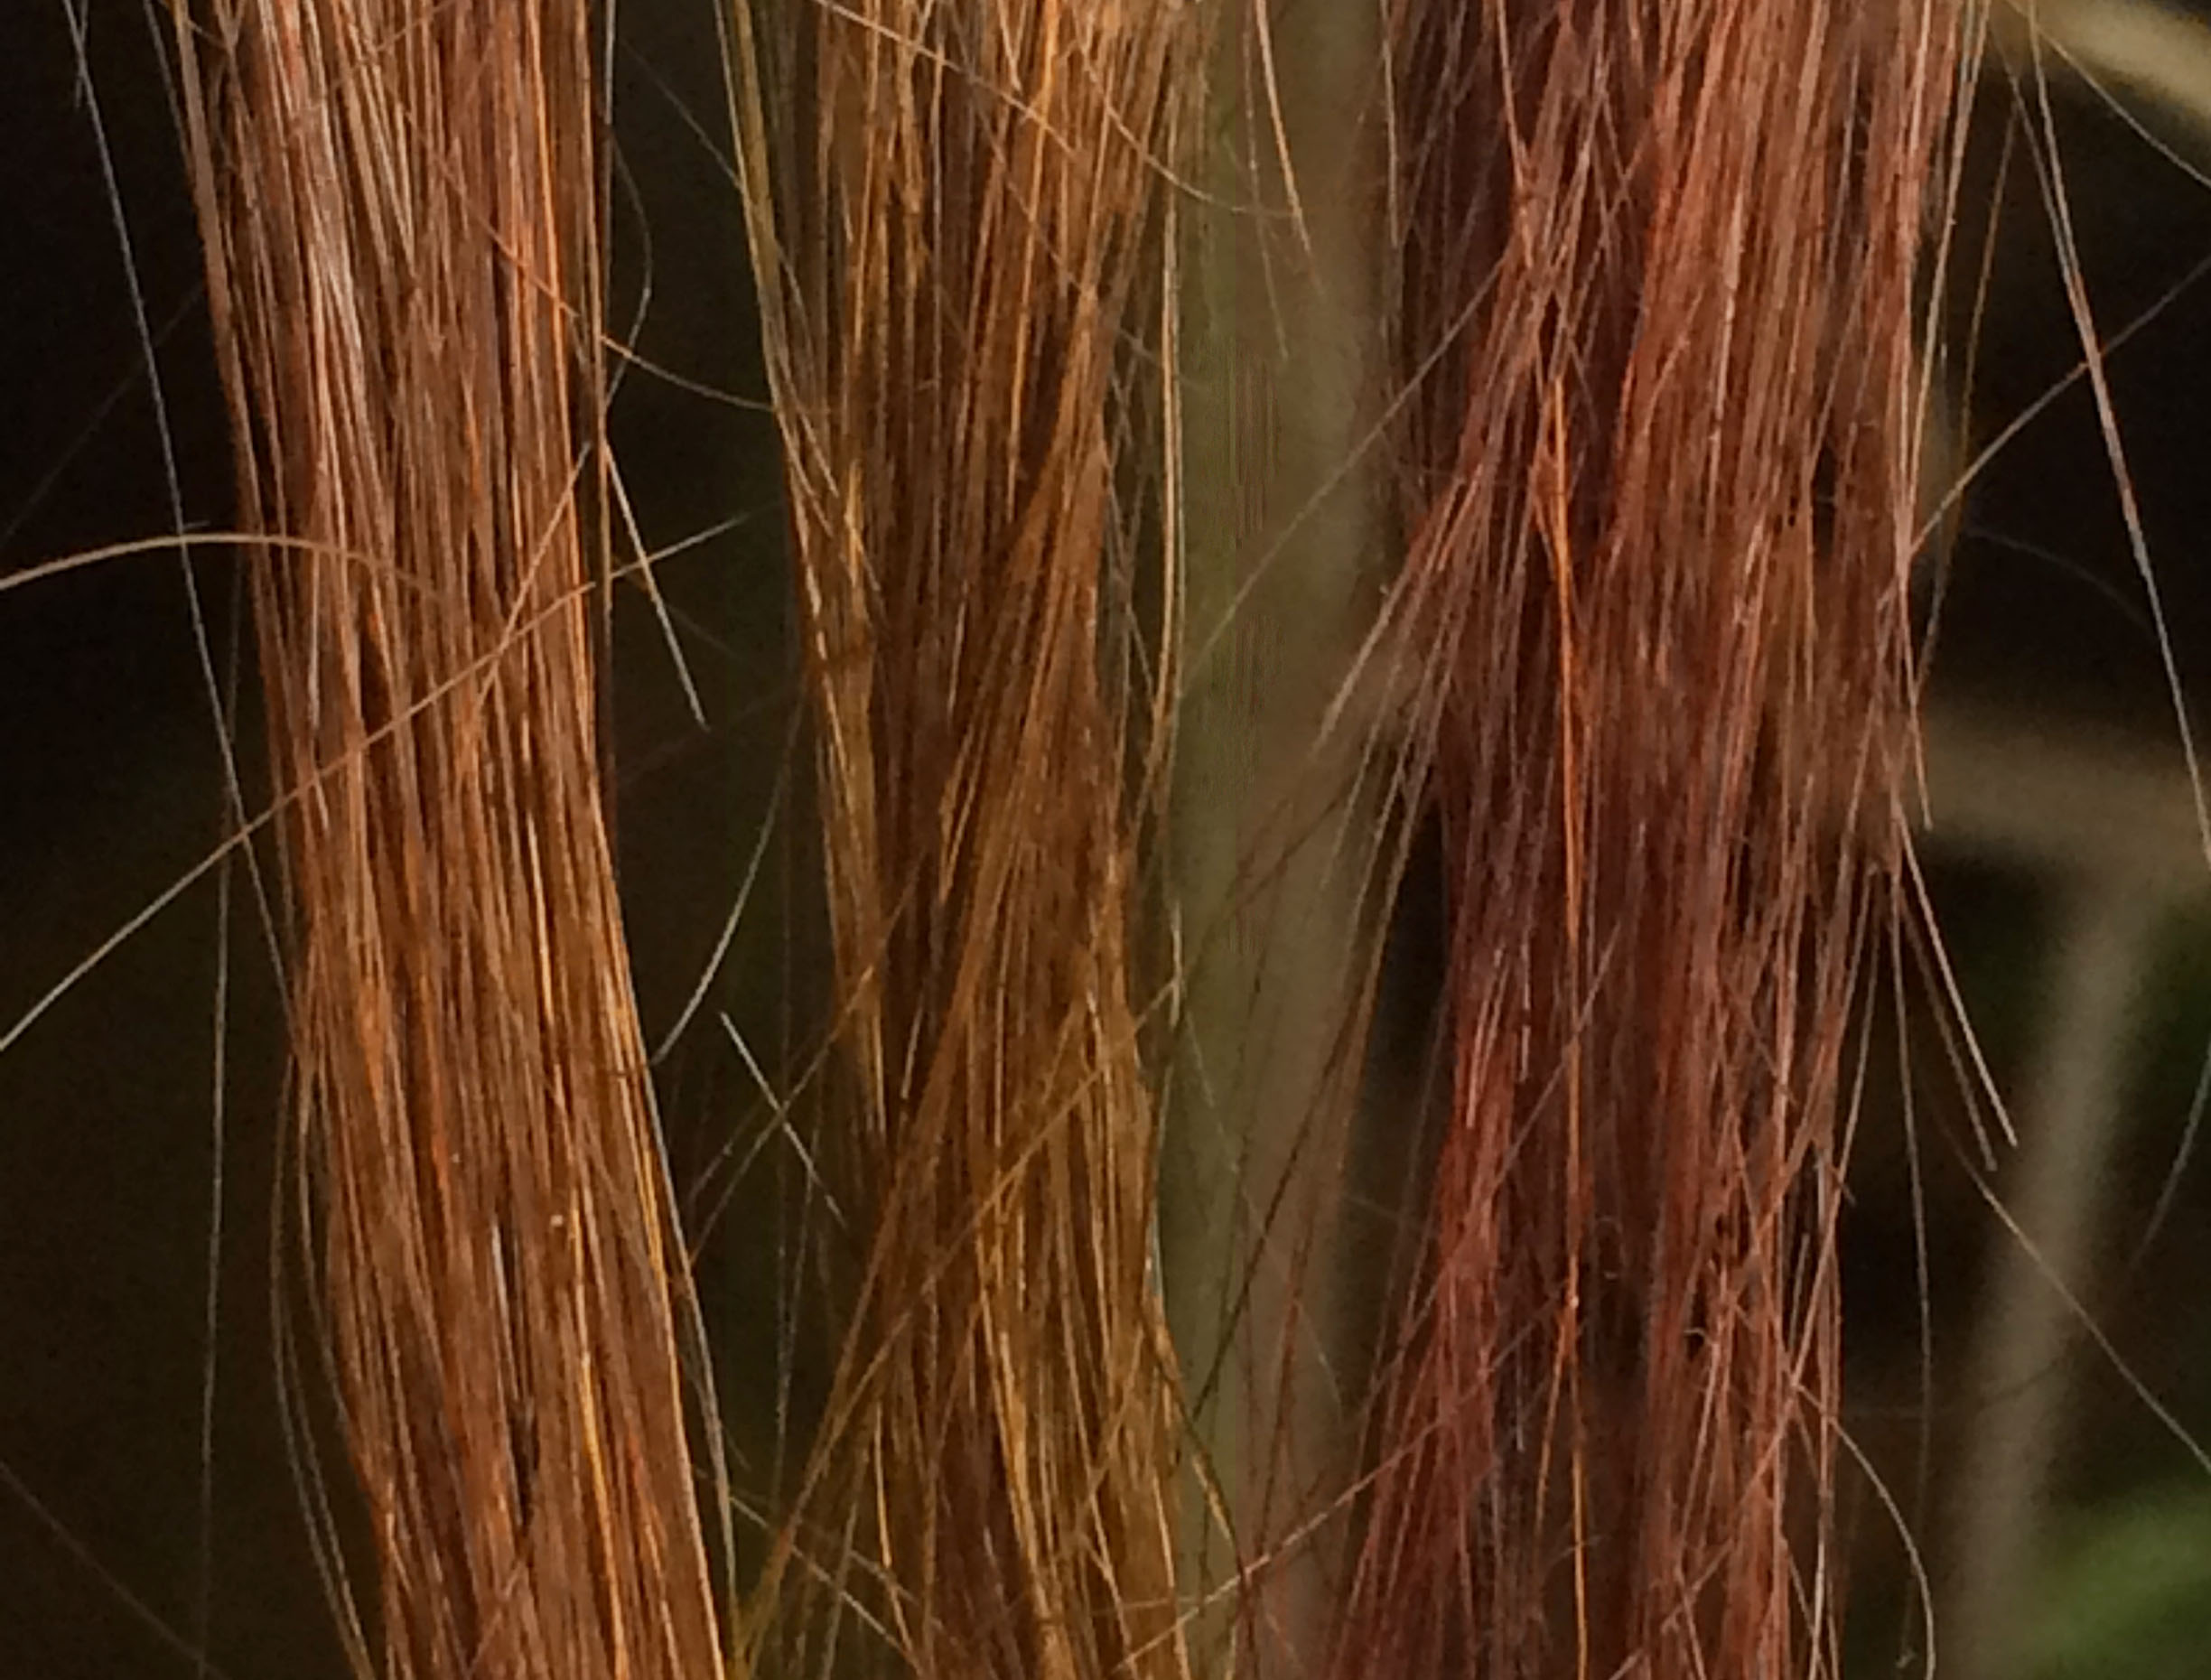 How To Remove Henna And Herbal Hair Dye From Your Hair